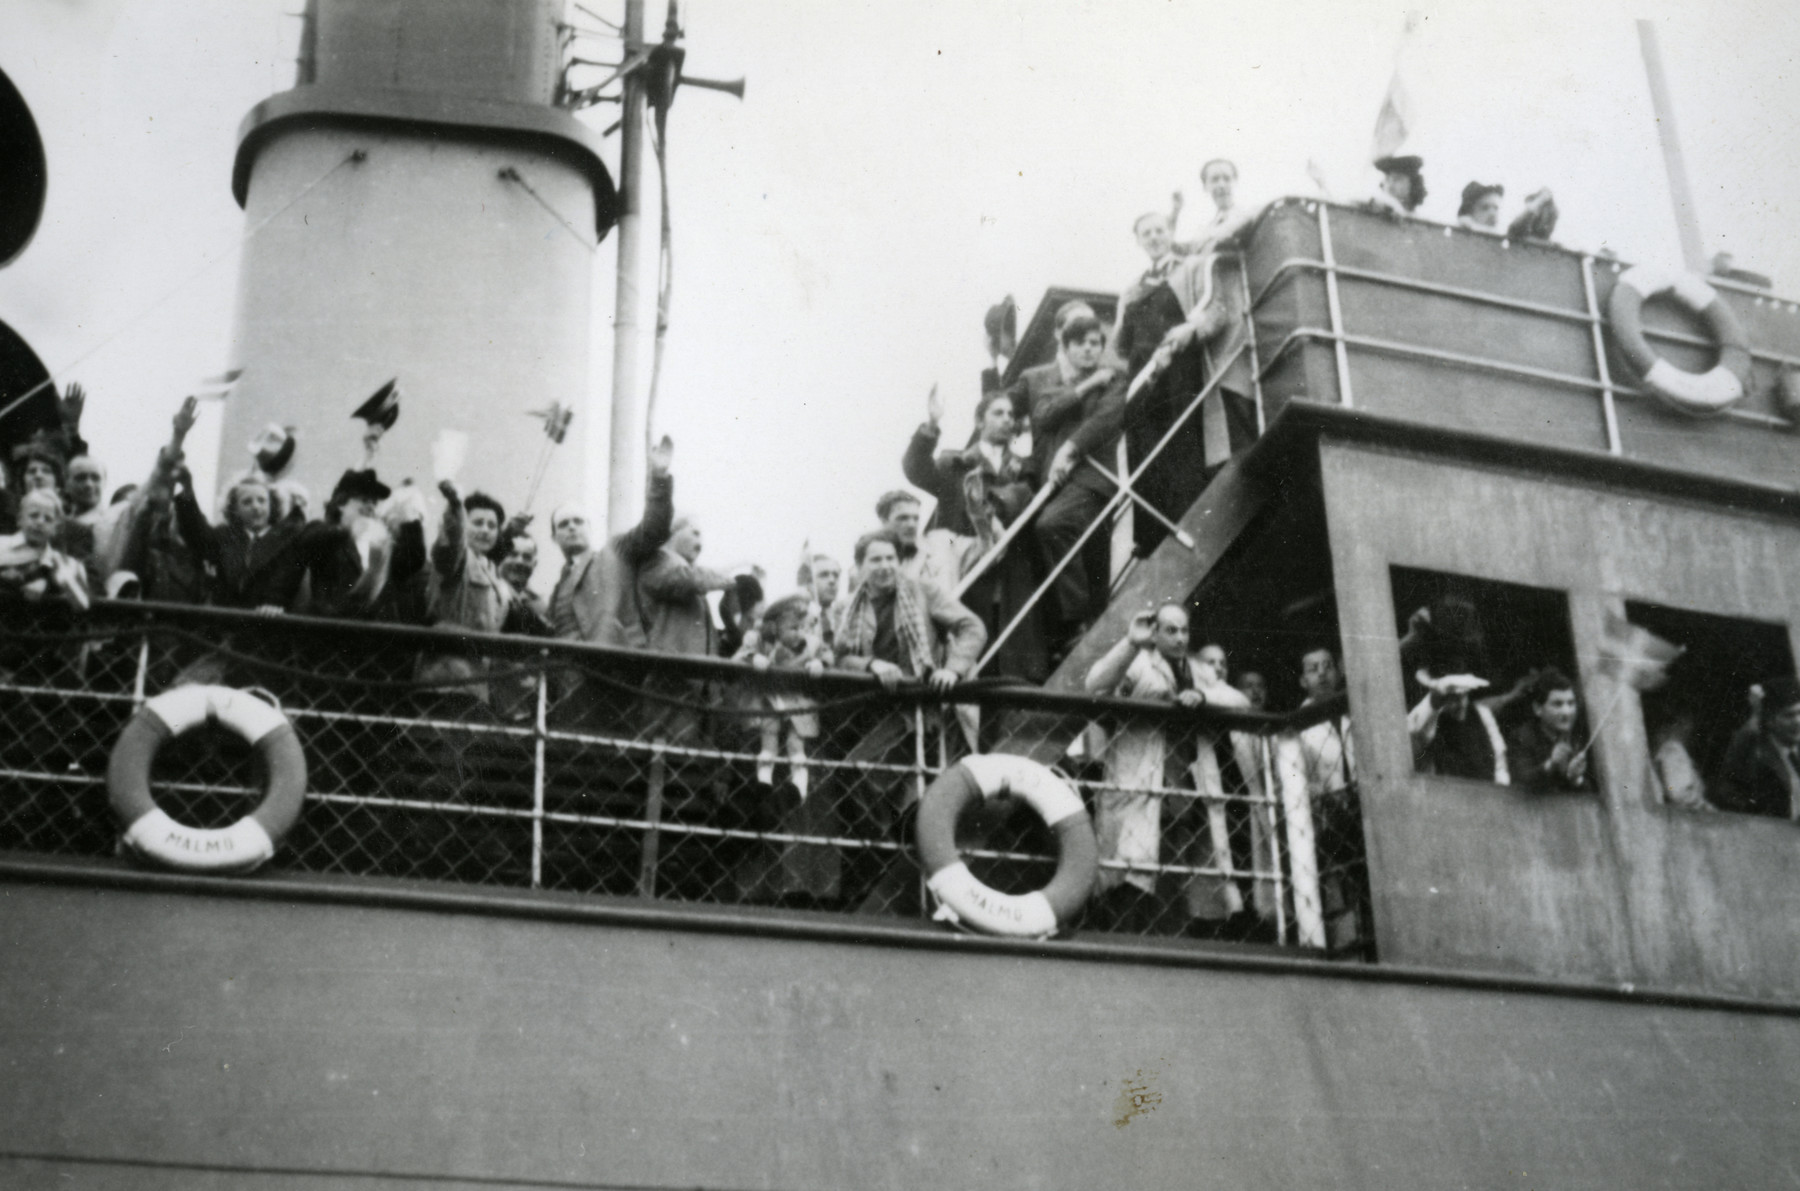 The Kischinovsky and Scheirmeister families return by ship to Denmark from Sweden